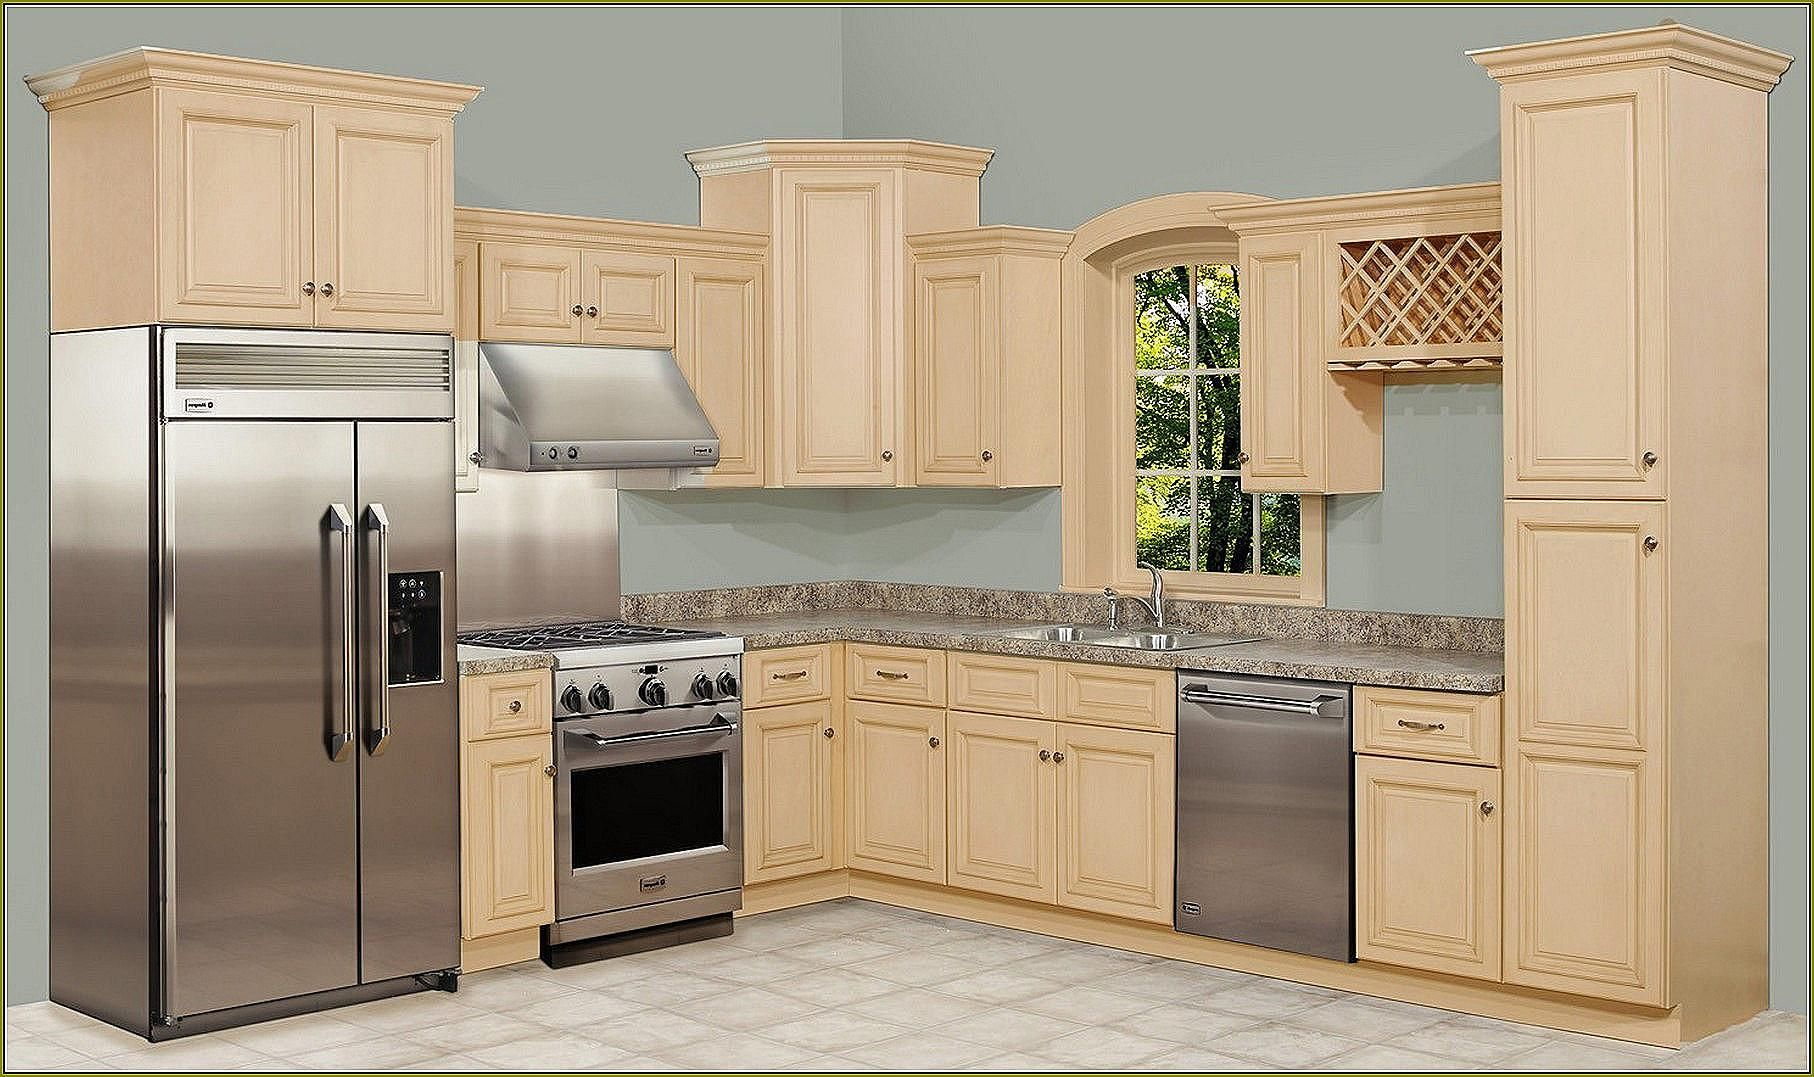 Lovely Unfinished Kitchen Cabinets Unfinishedkitchen Kitchen Cabinets Home Depot Simple Kitchen Cabinets Unfinished Kitchen Cabinets